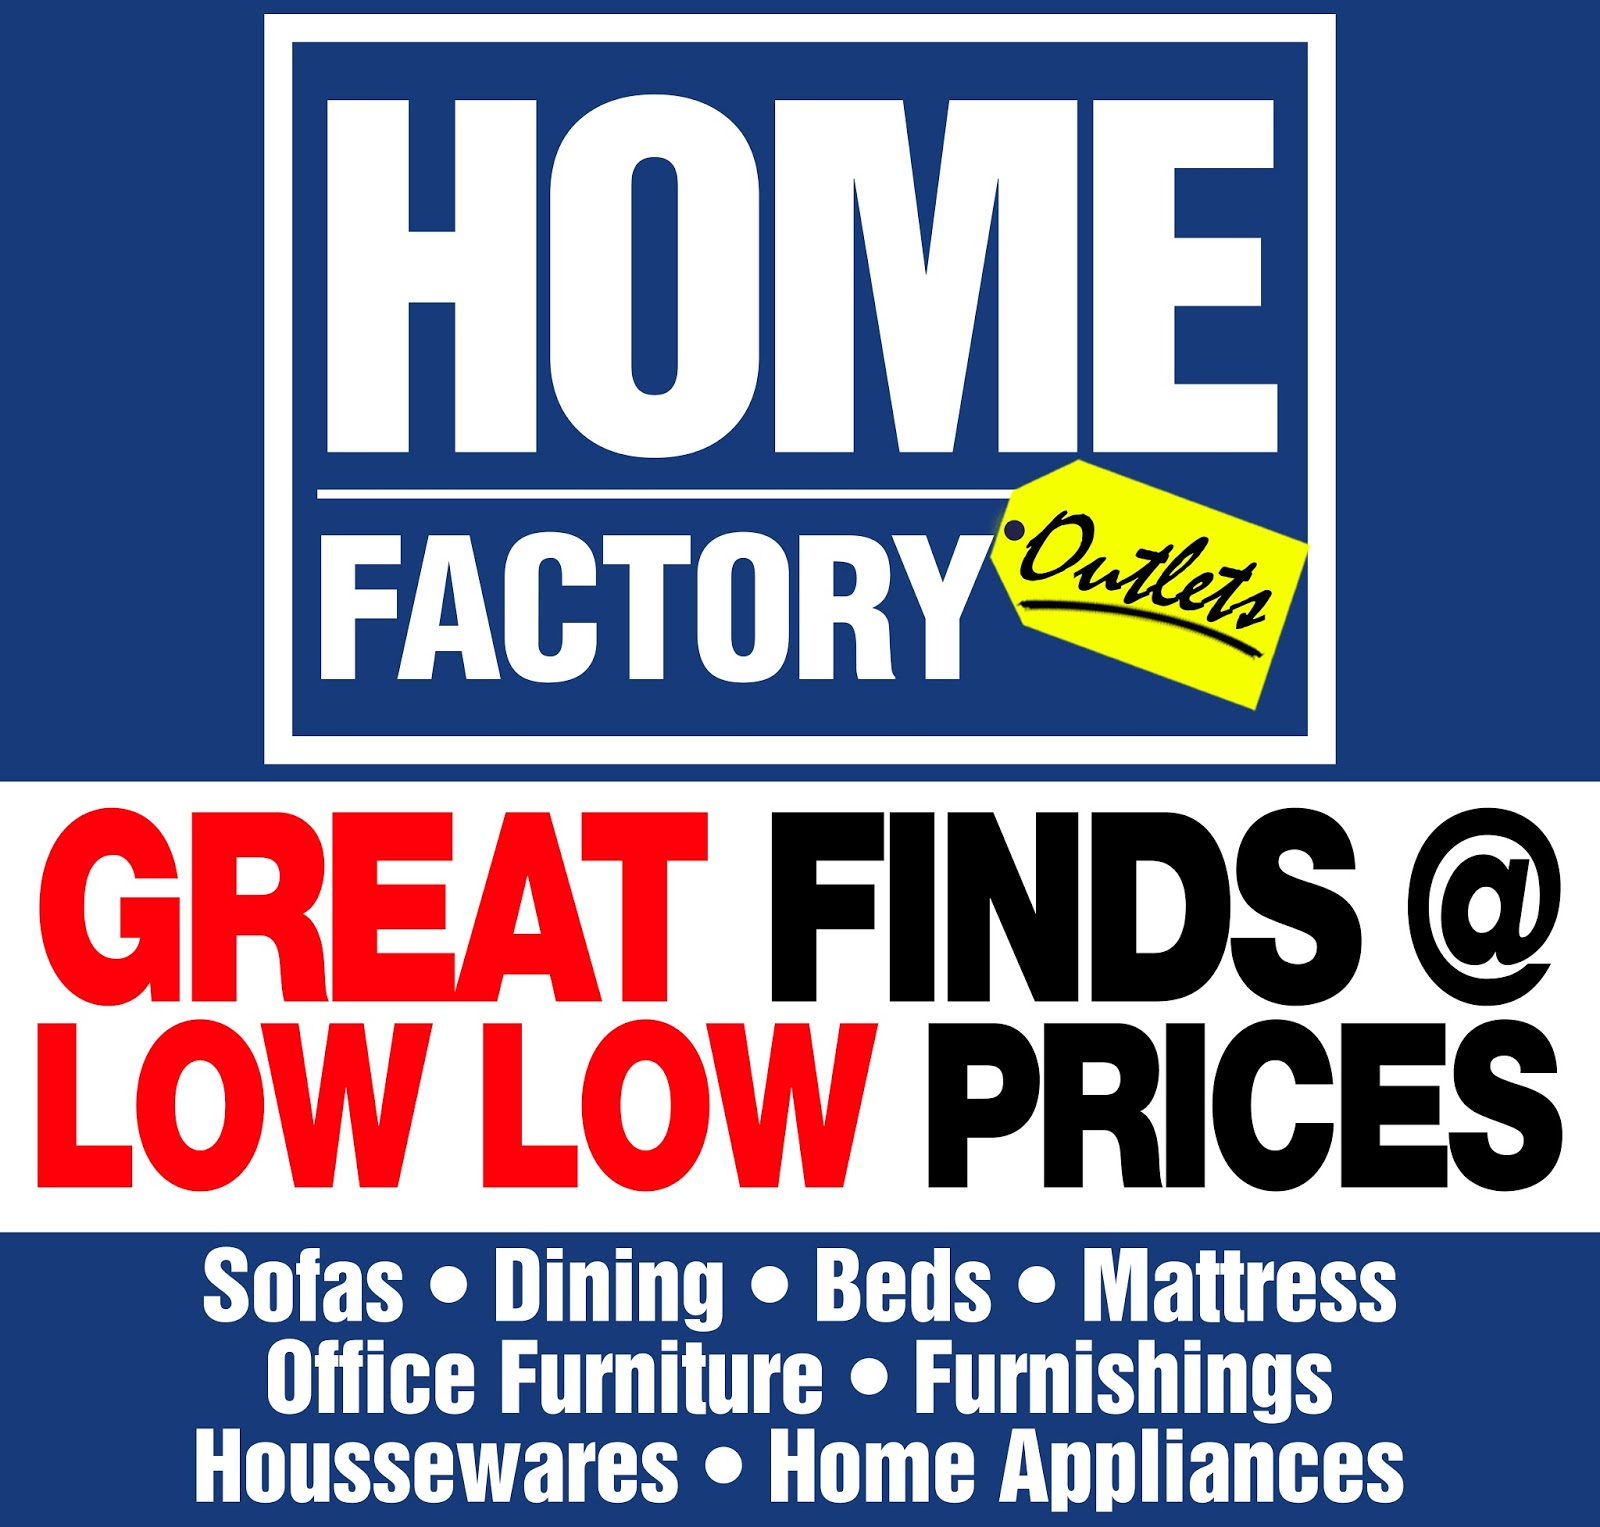 Home Factory Outlets Grand Opening Sale Ednything